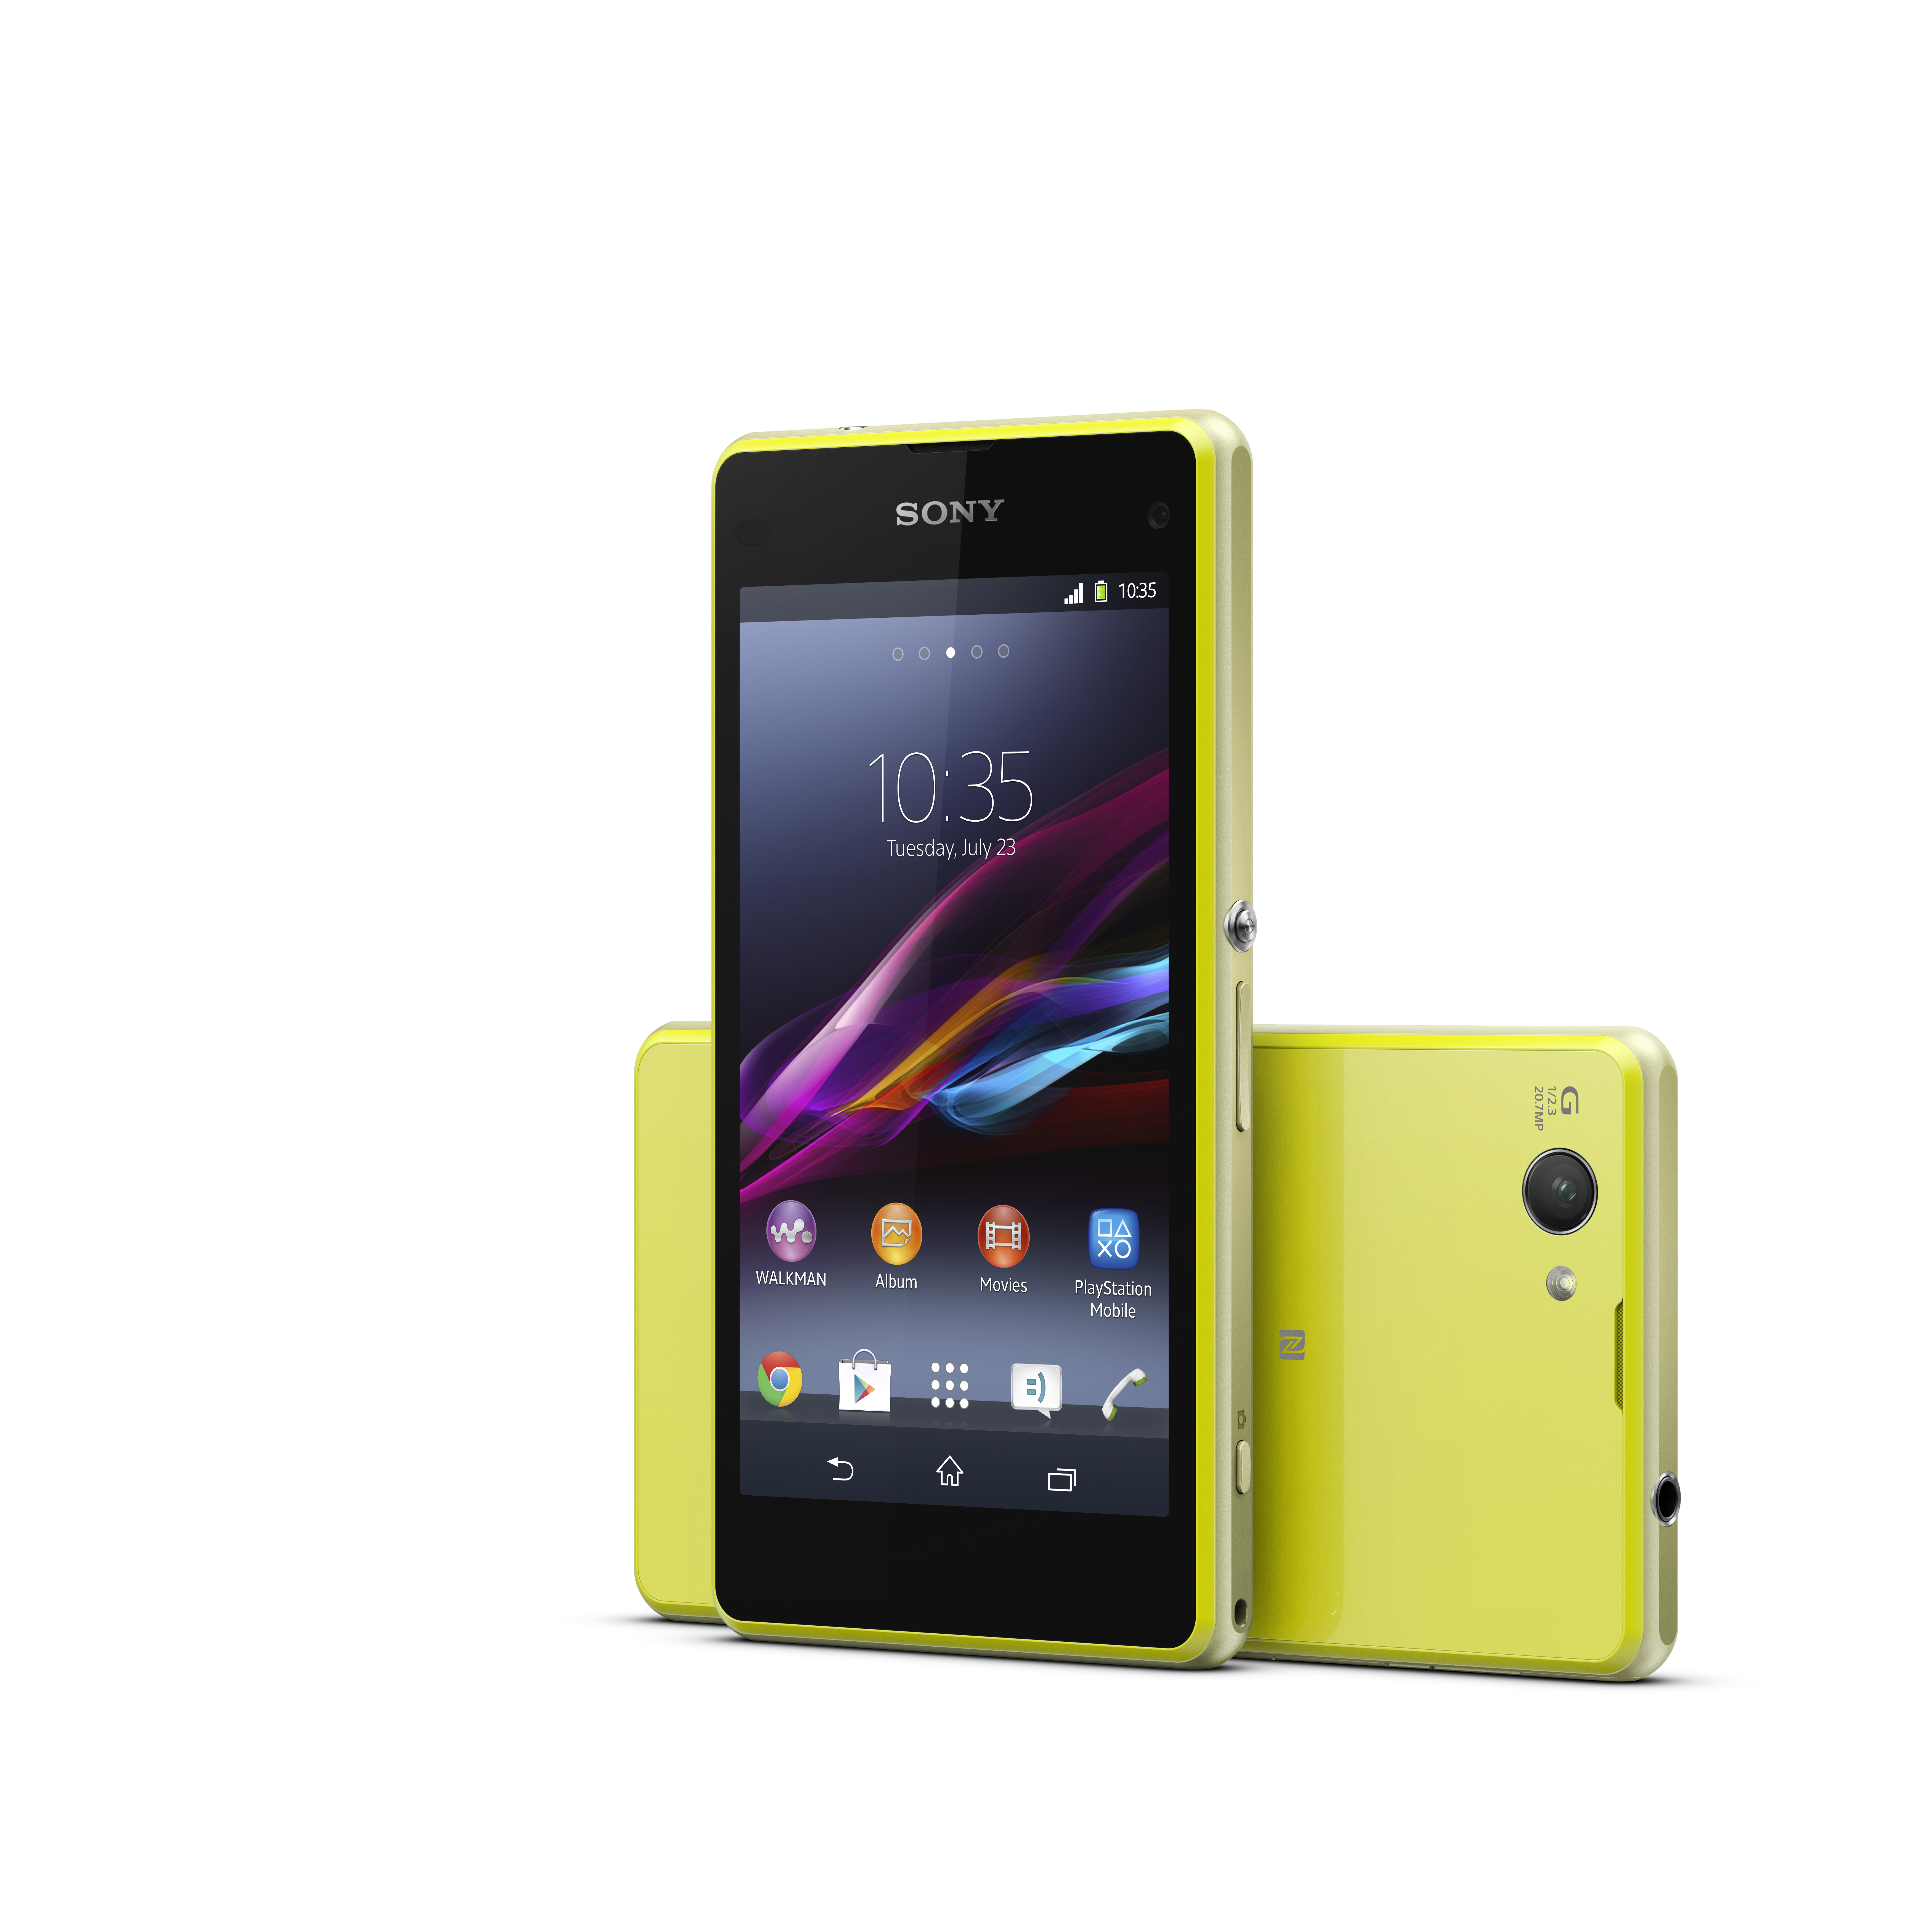 photo sony xperia z1 compact lime 7000 x 7000. Black Bedroom Furniture Sets. Home Design Ideas